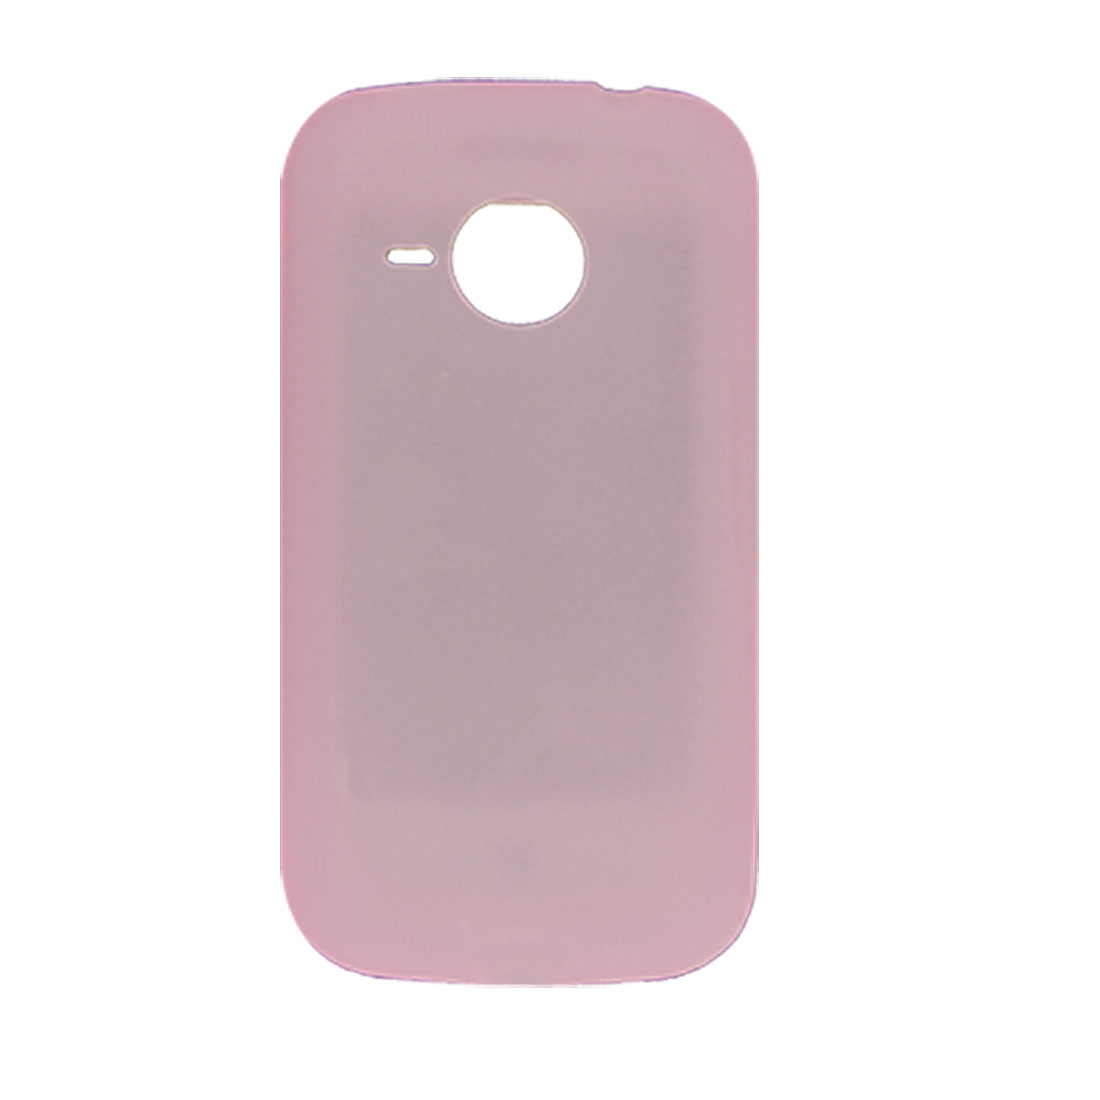 Pink Silicone Skin Cover Case for HTC Desire 6200